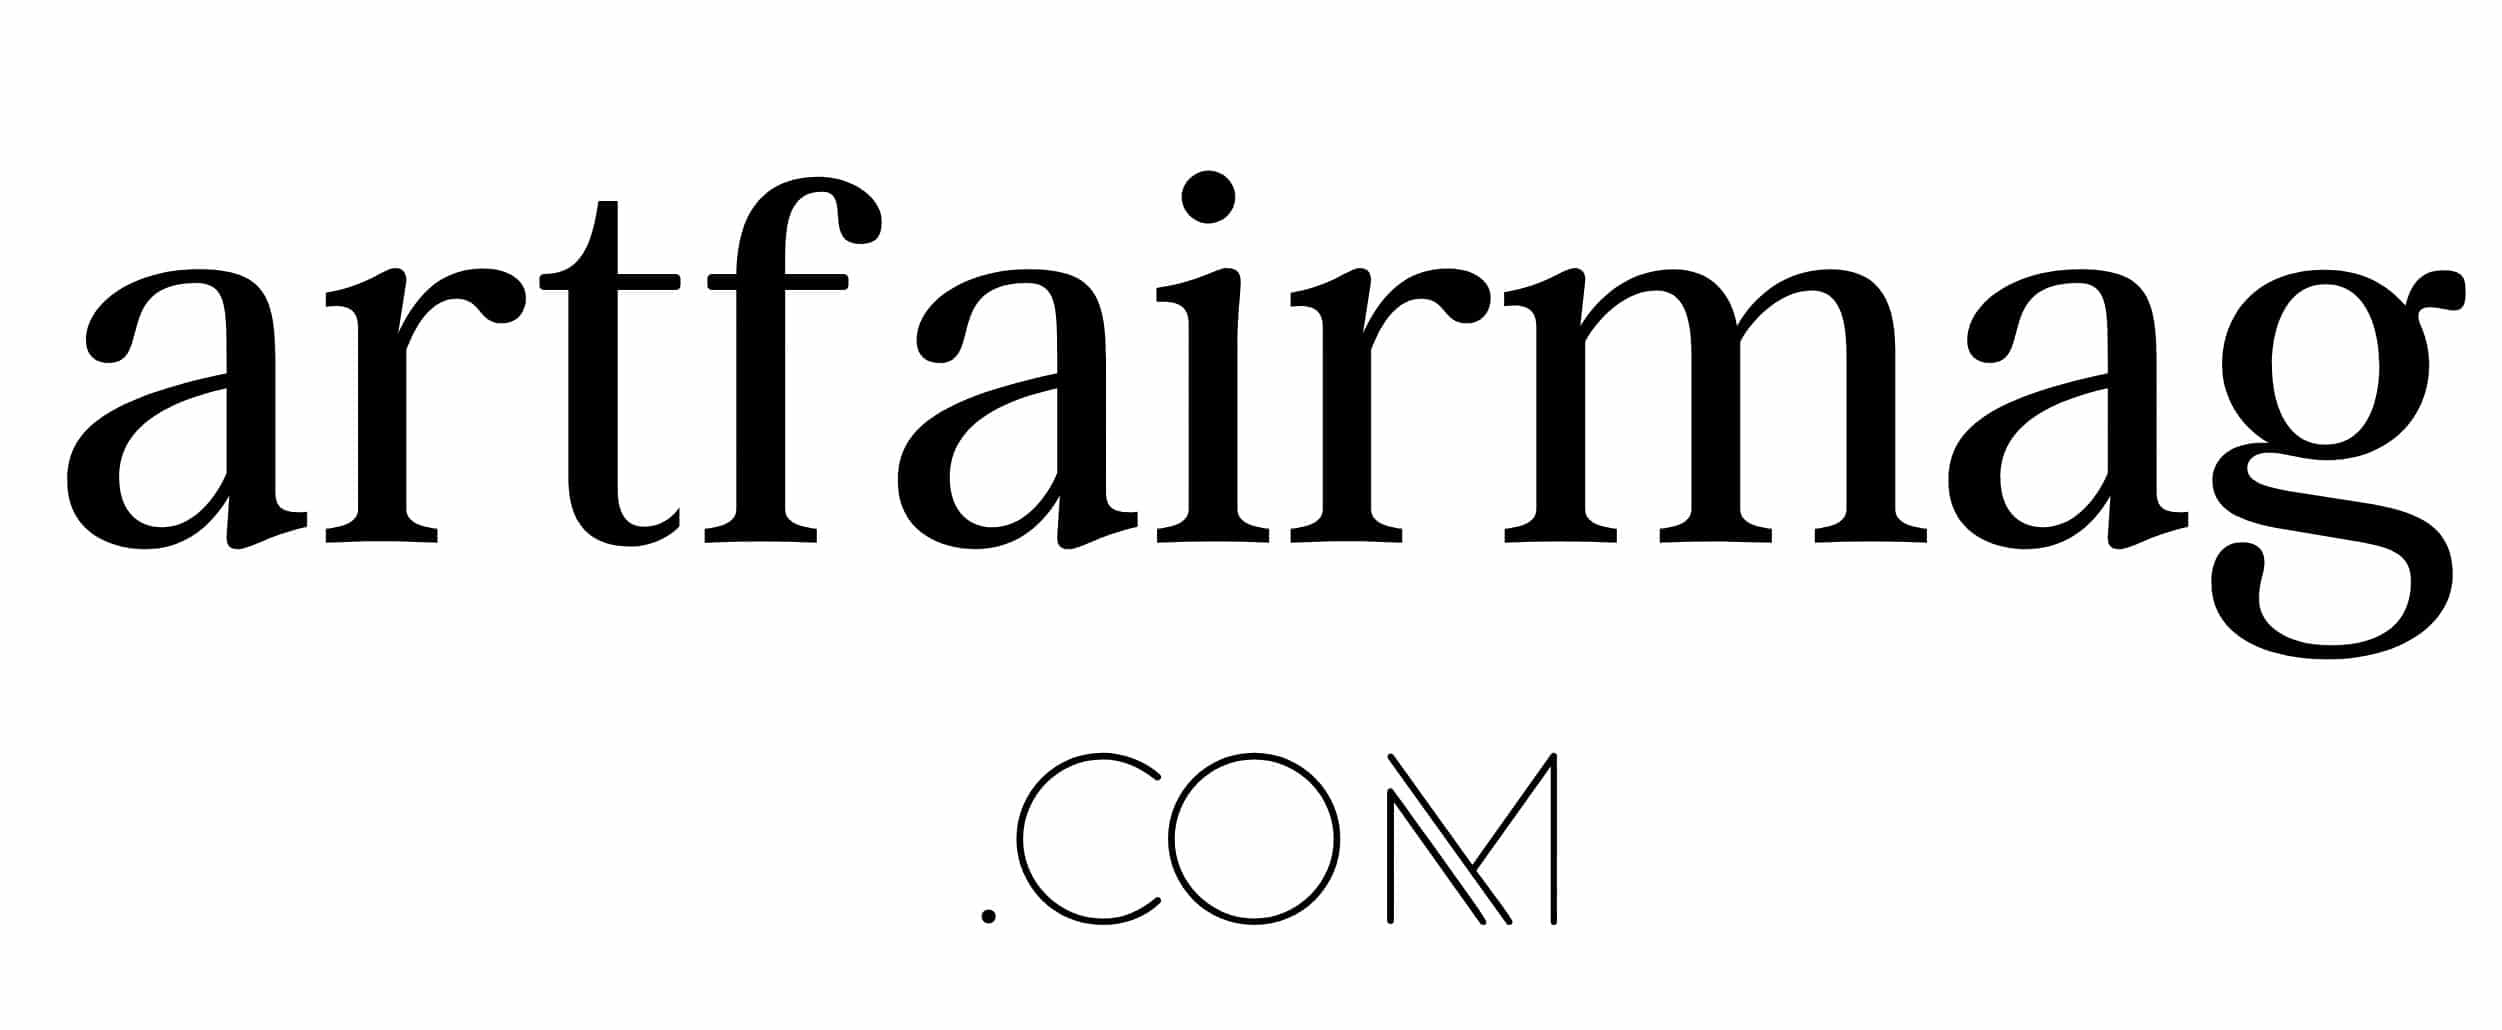 All about art fairs worldwide | artfairmag.com